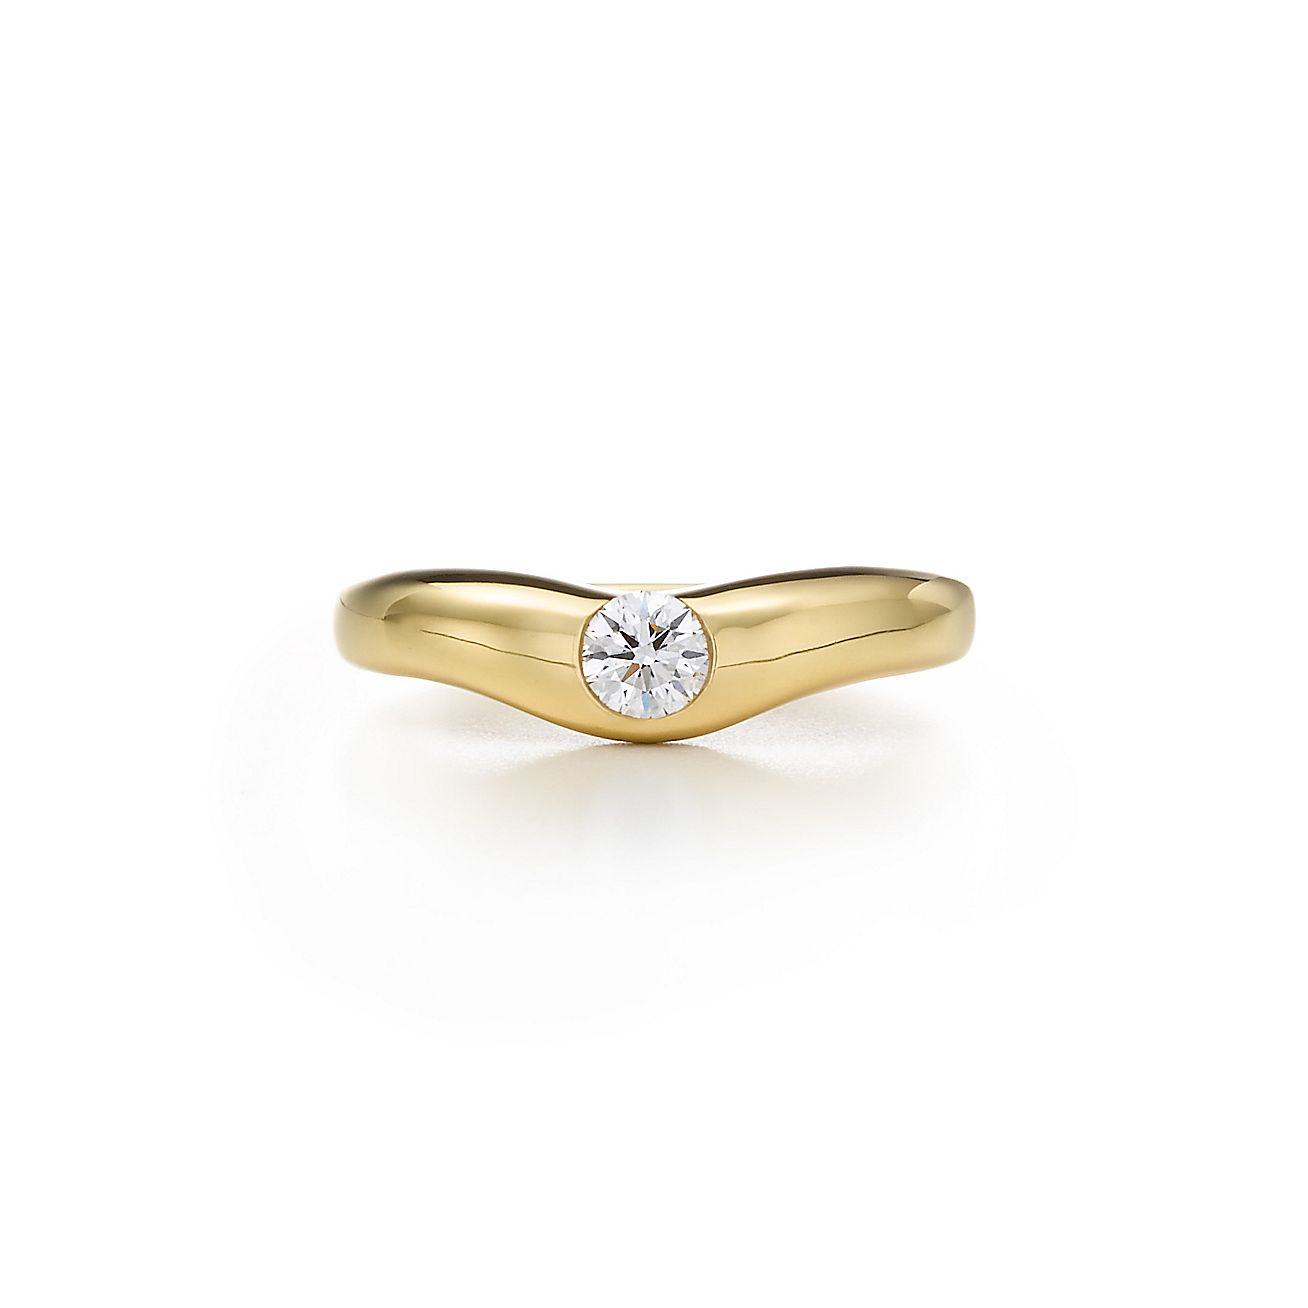 Elsa Peretti 174 Curved Band Ring With A Diamond In 18k Gold